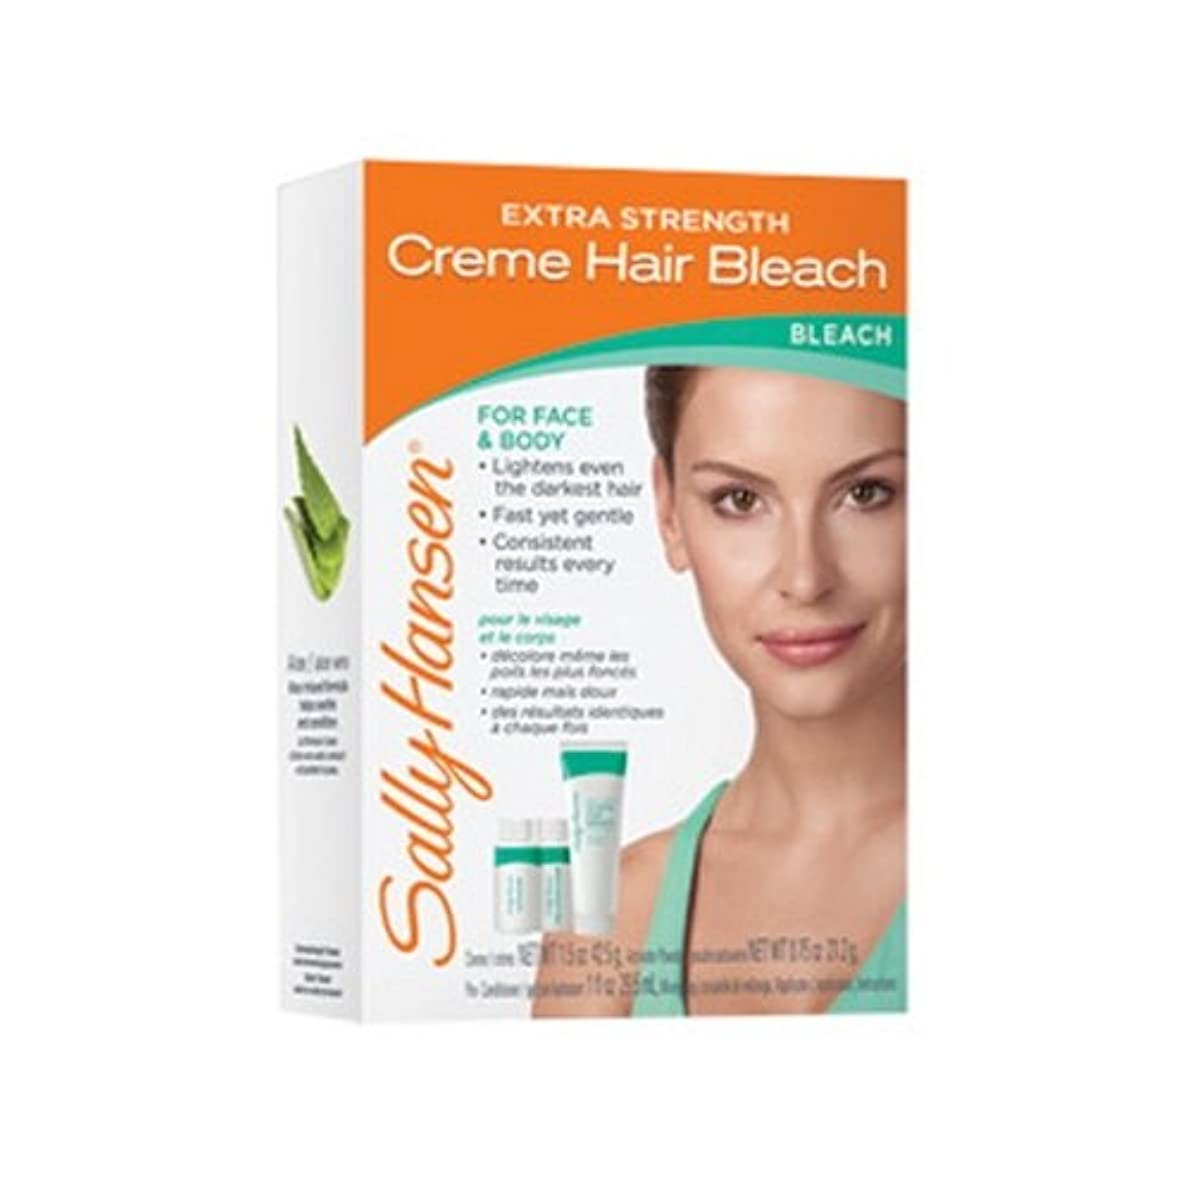 うなずく賢明な結紮SALLY HANSEN Extra Strength Creme Hair Bleach for Face & Body - SH2010 (並行輸入品)